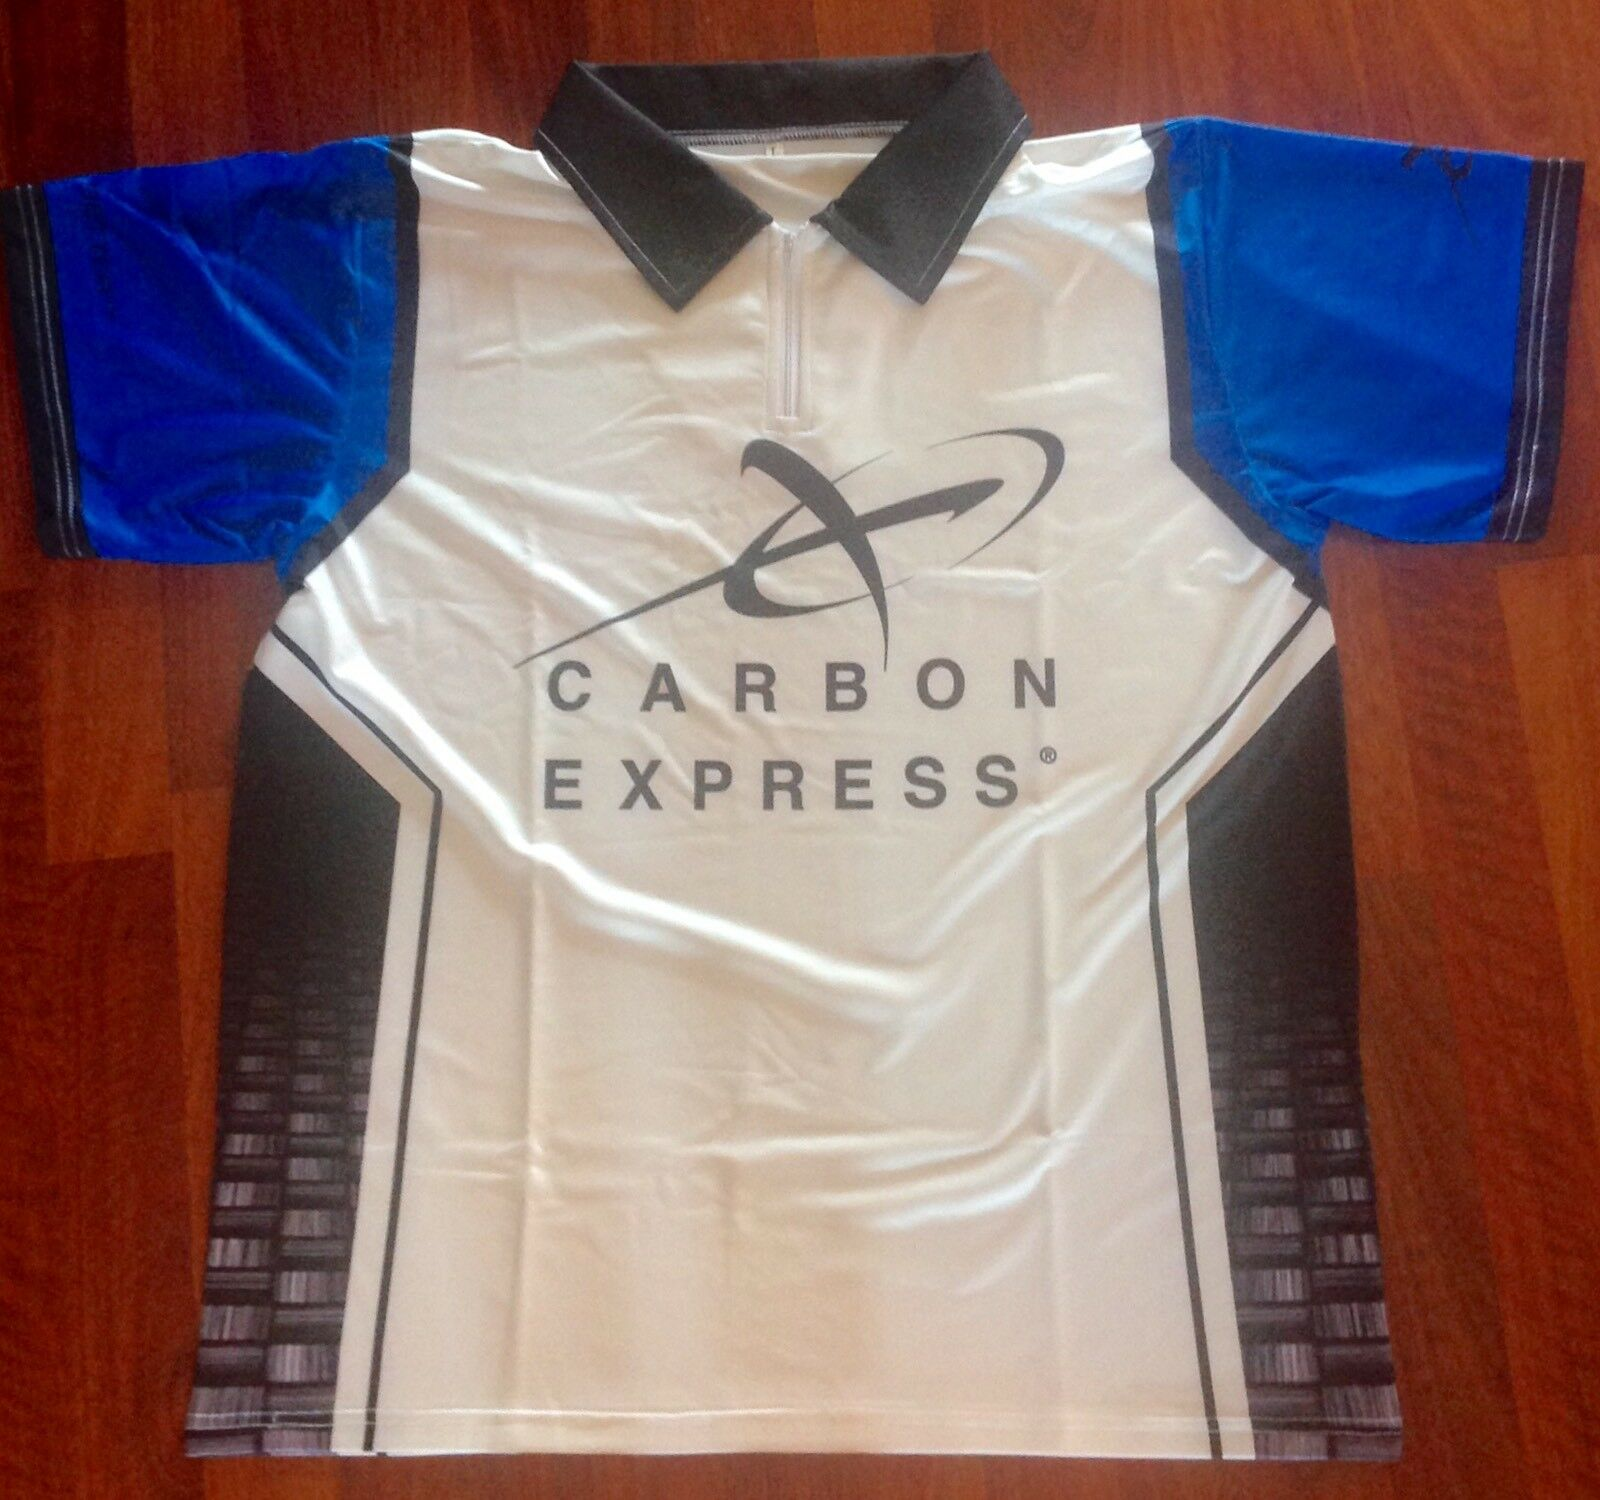 NEW CARBON EXPRESS ARCHERY SHOOTER SHIRT, SIZE LARGE